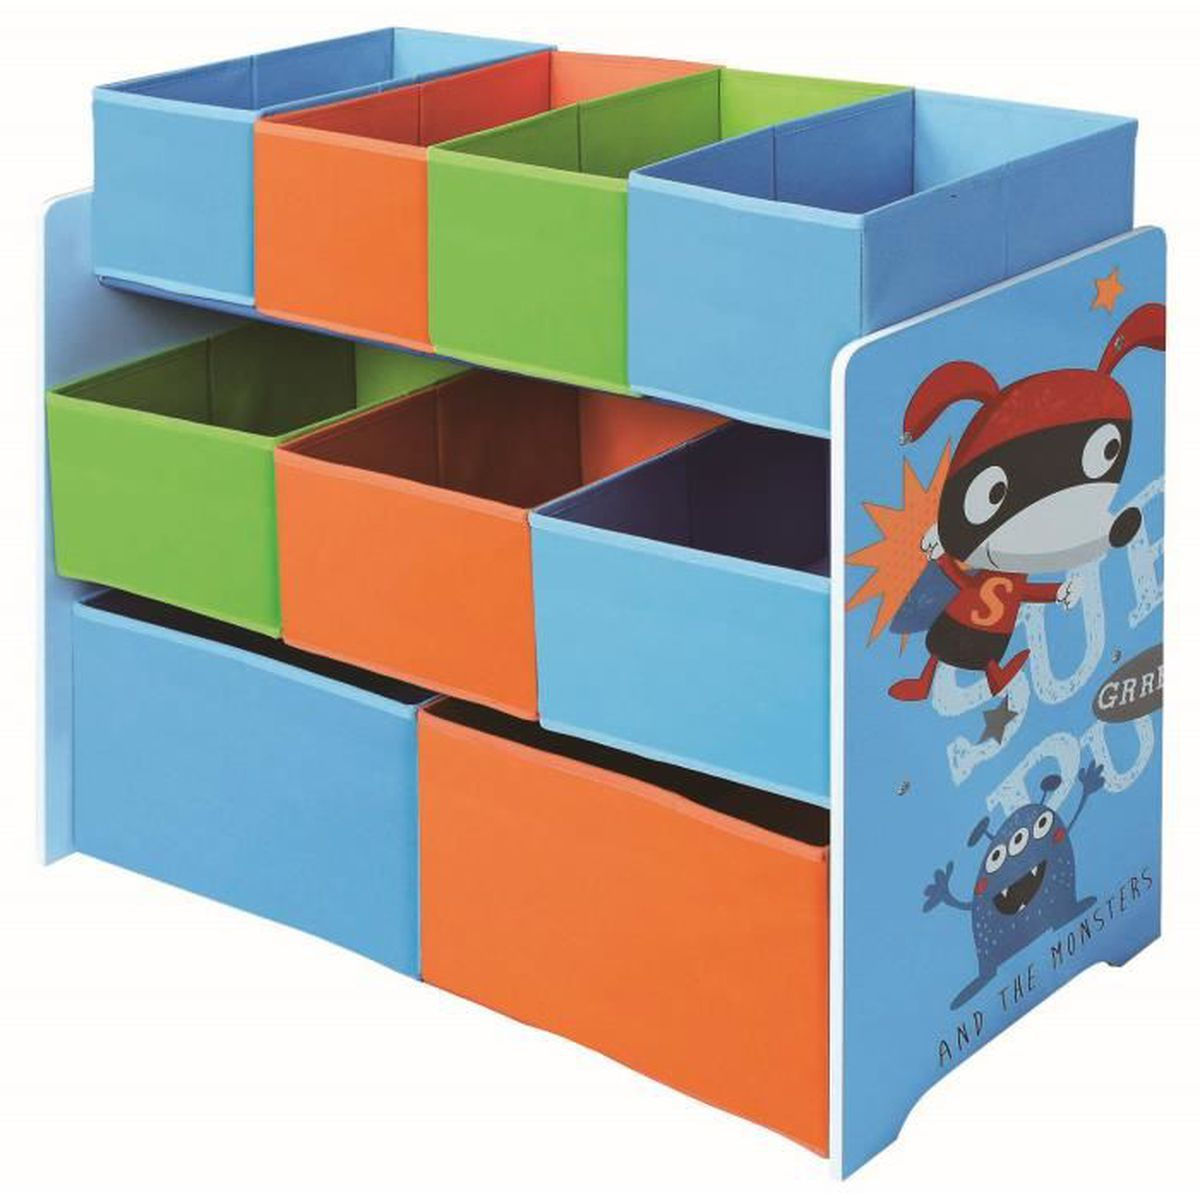 meuble de rangement pour enfant bleu motif super heros l. Black Bedroom Furniture Sets. Home Design Ideas